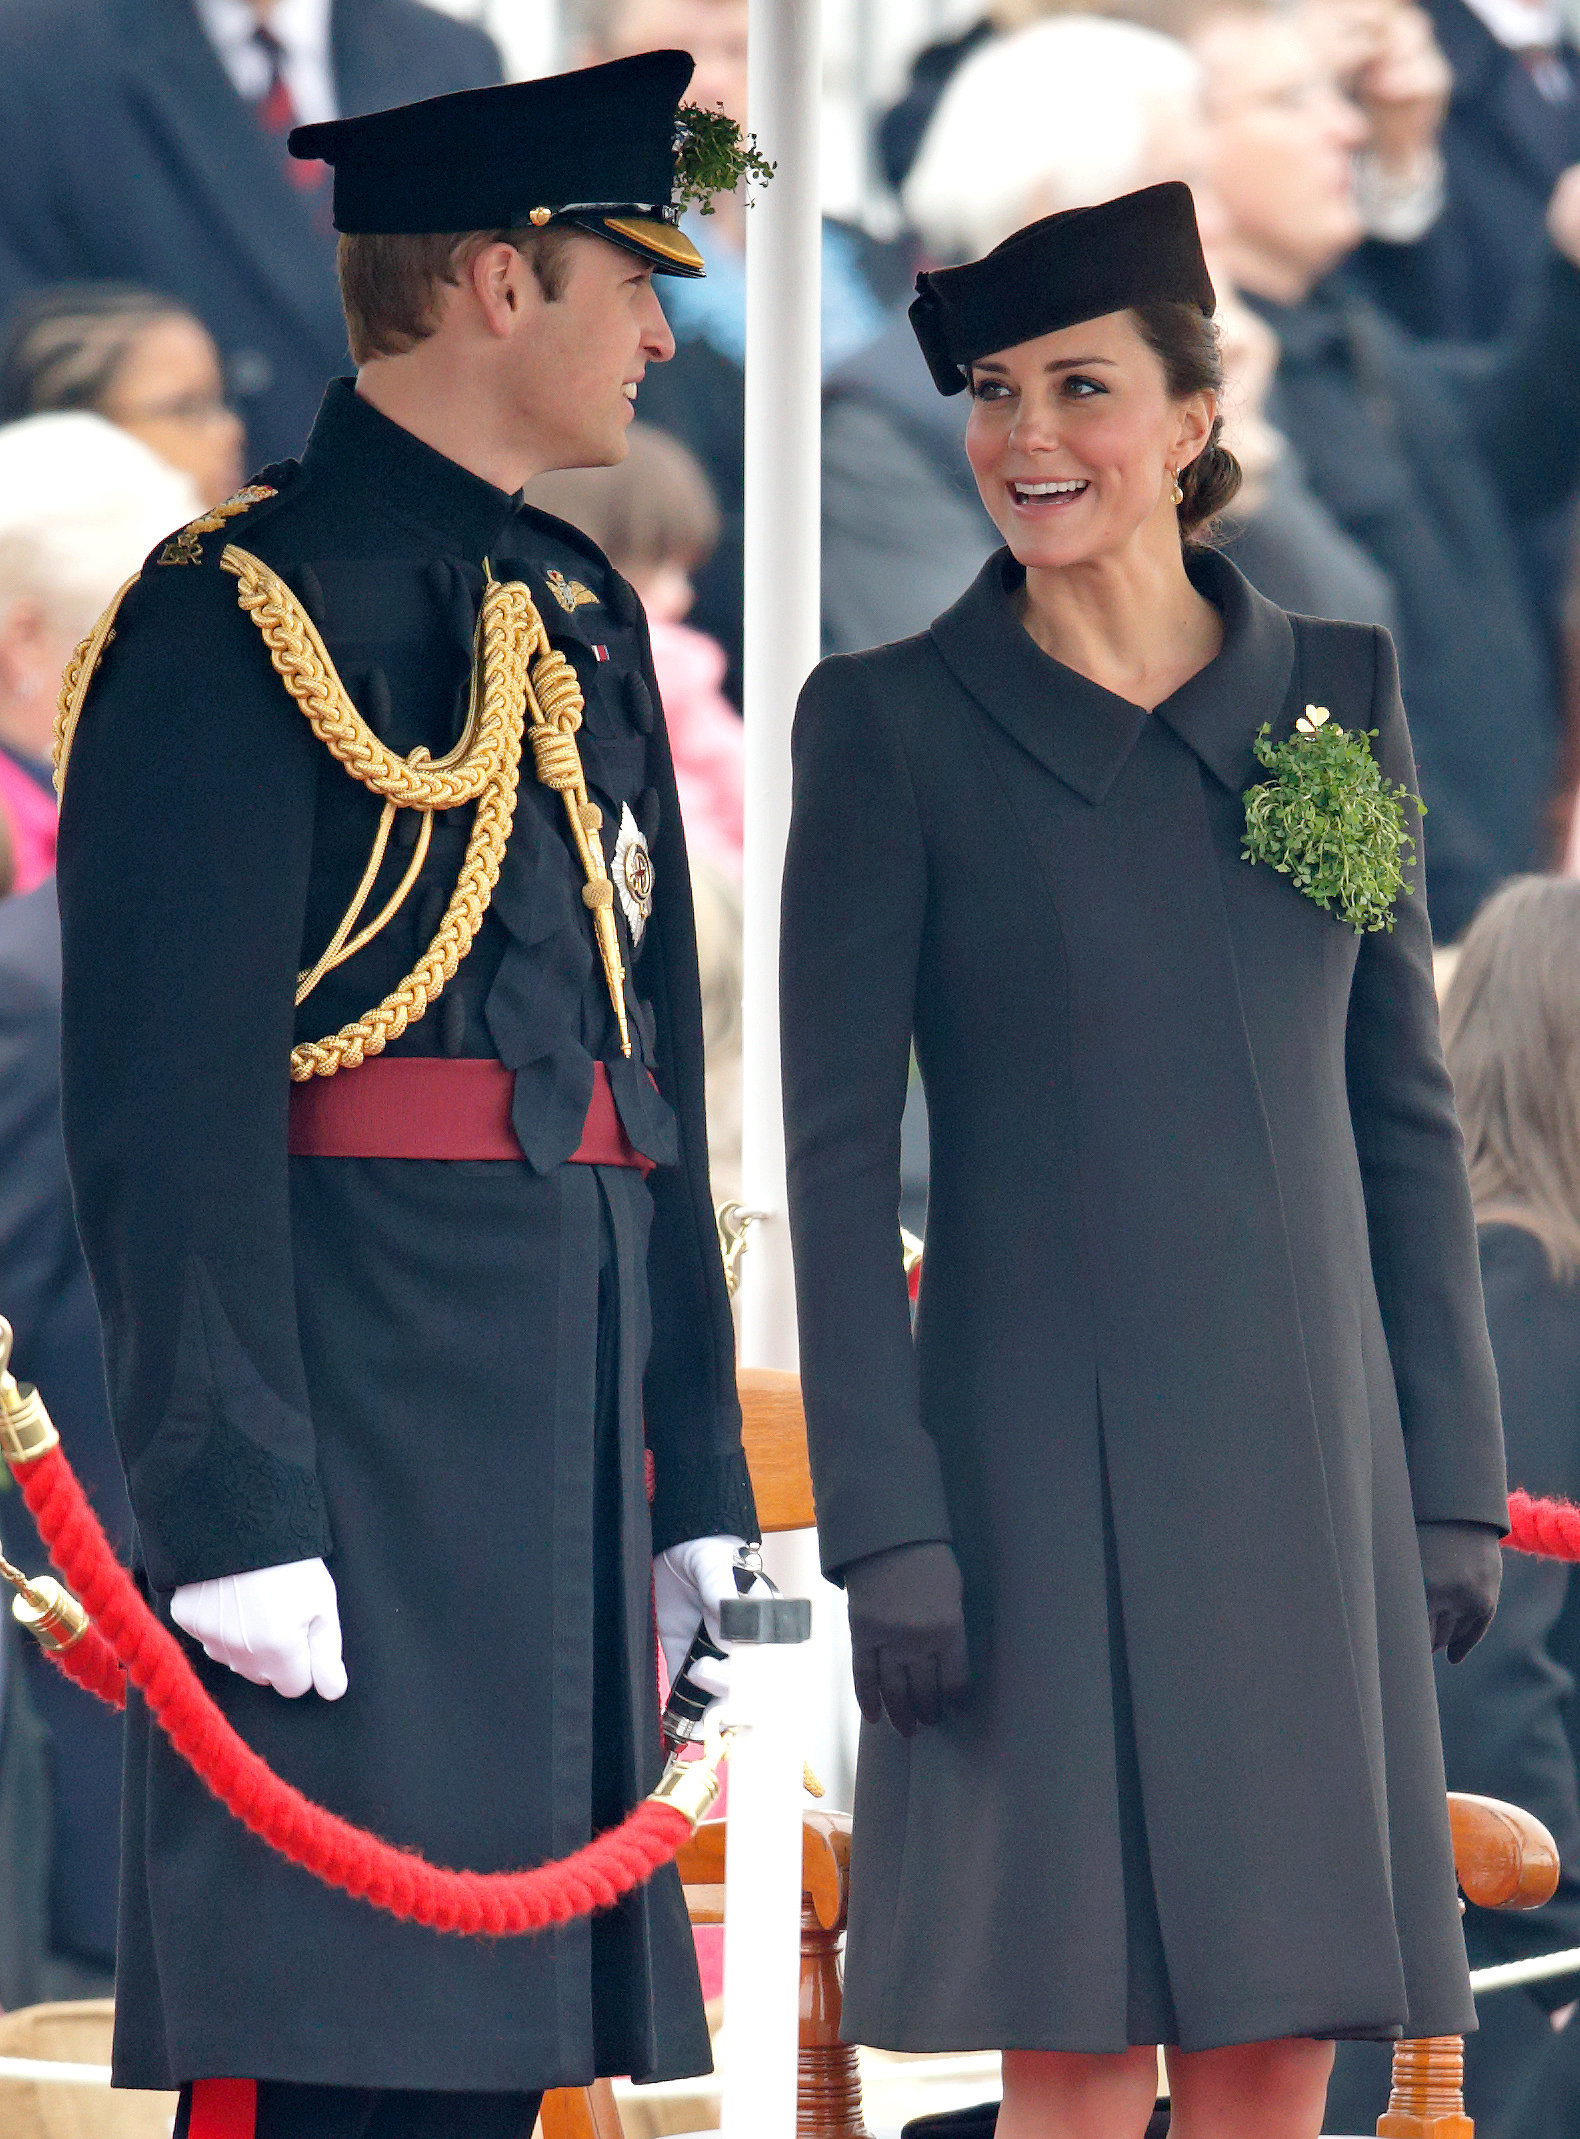 Catherine Duchess of Cambridge Photo (C) GETTCatherine Duchess of Cambridge Photo (C) GETTY IMAGESY IMAGES